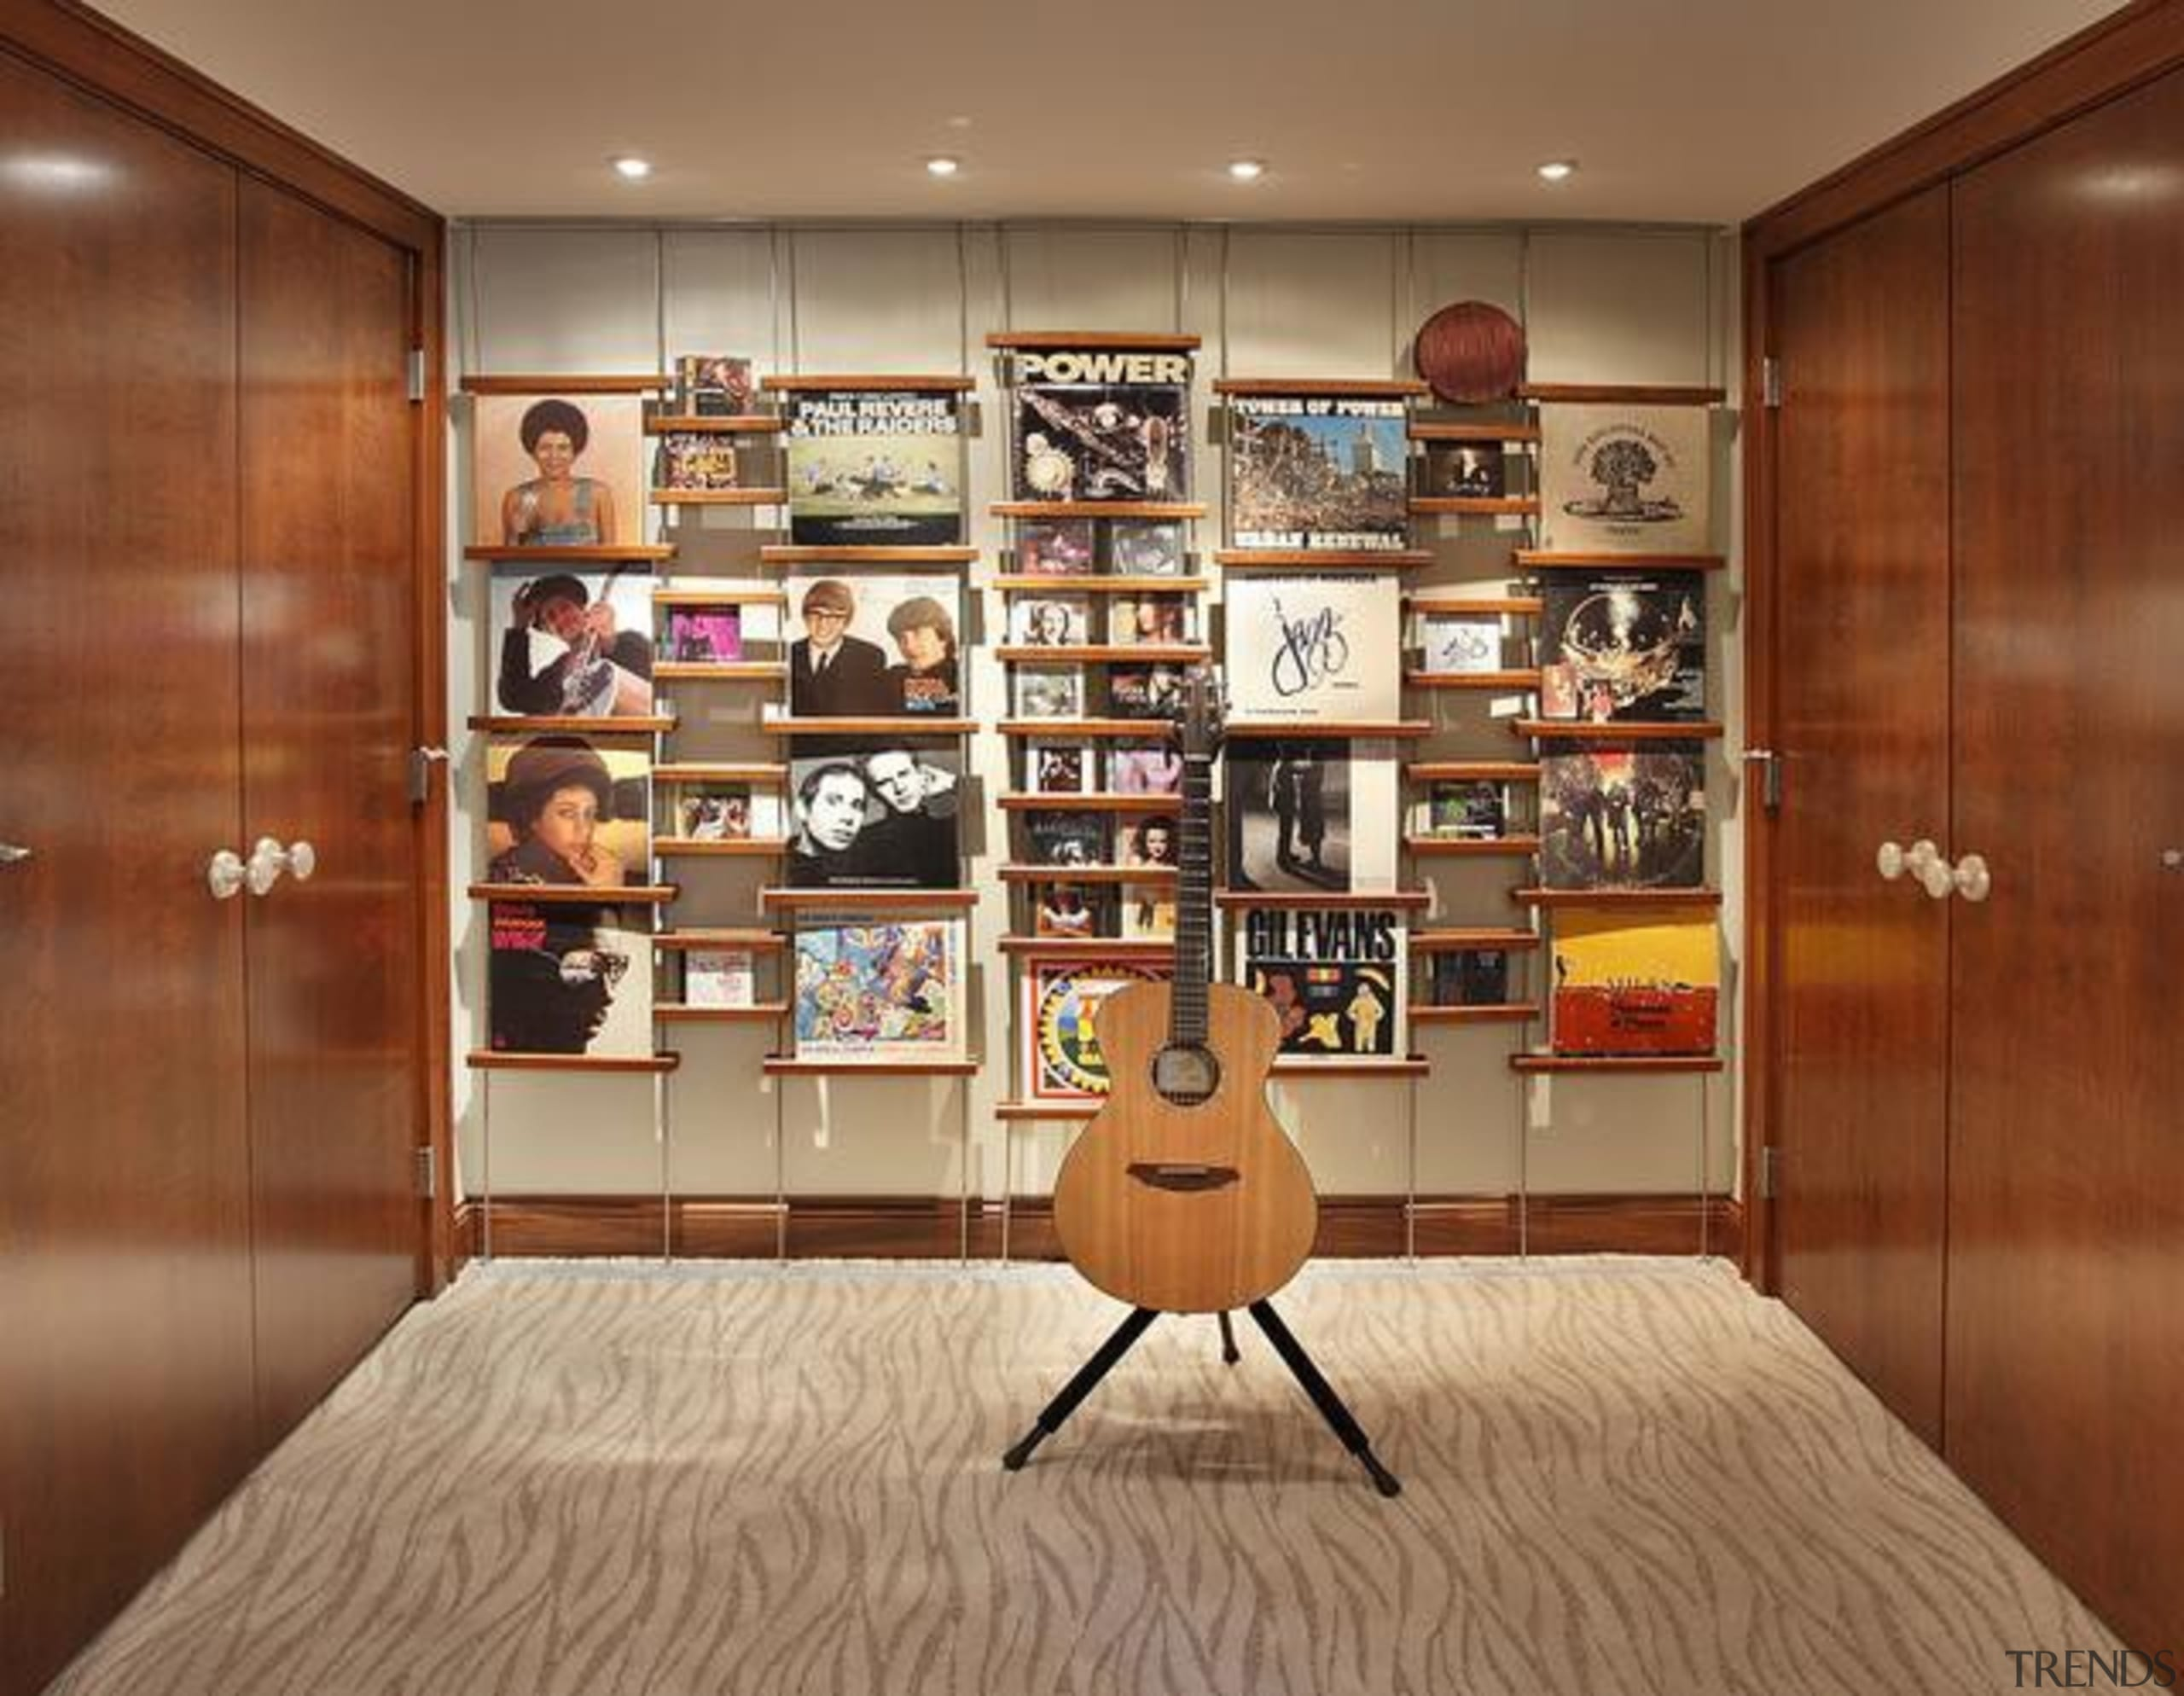 Because of its expansive and wide-open layout, a bookcase, cabinetry, closet, floor, flooring, furniture, interior design, room, shelf, shelving, brown